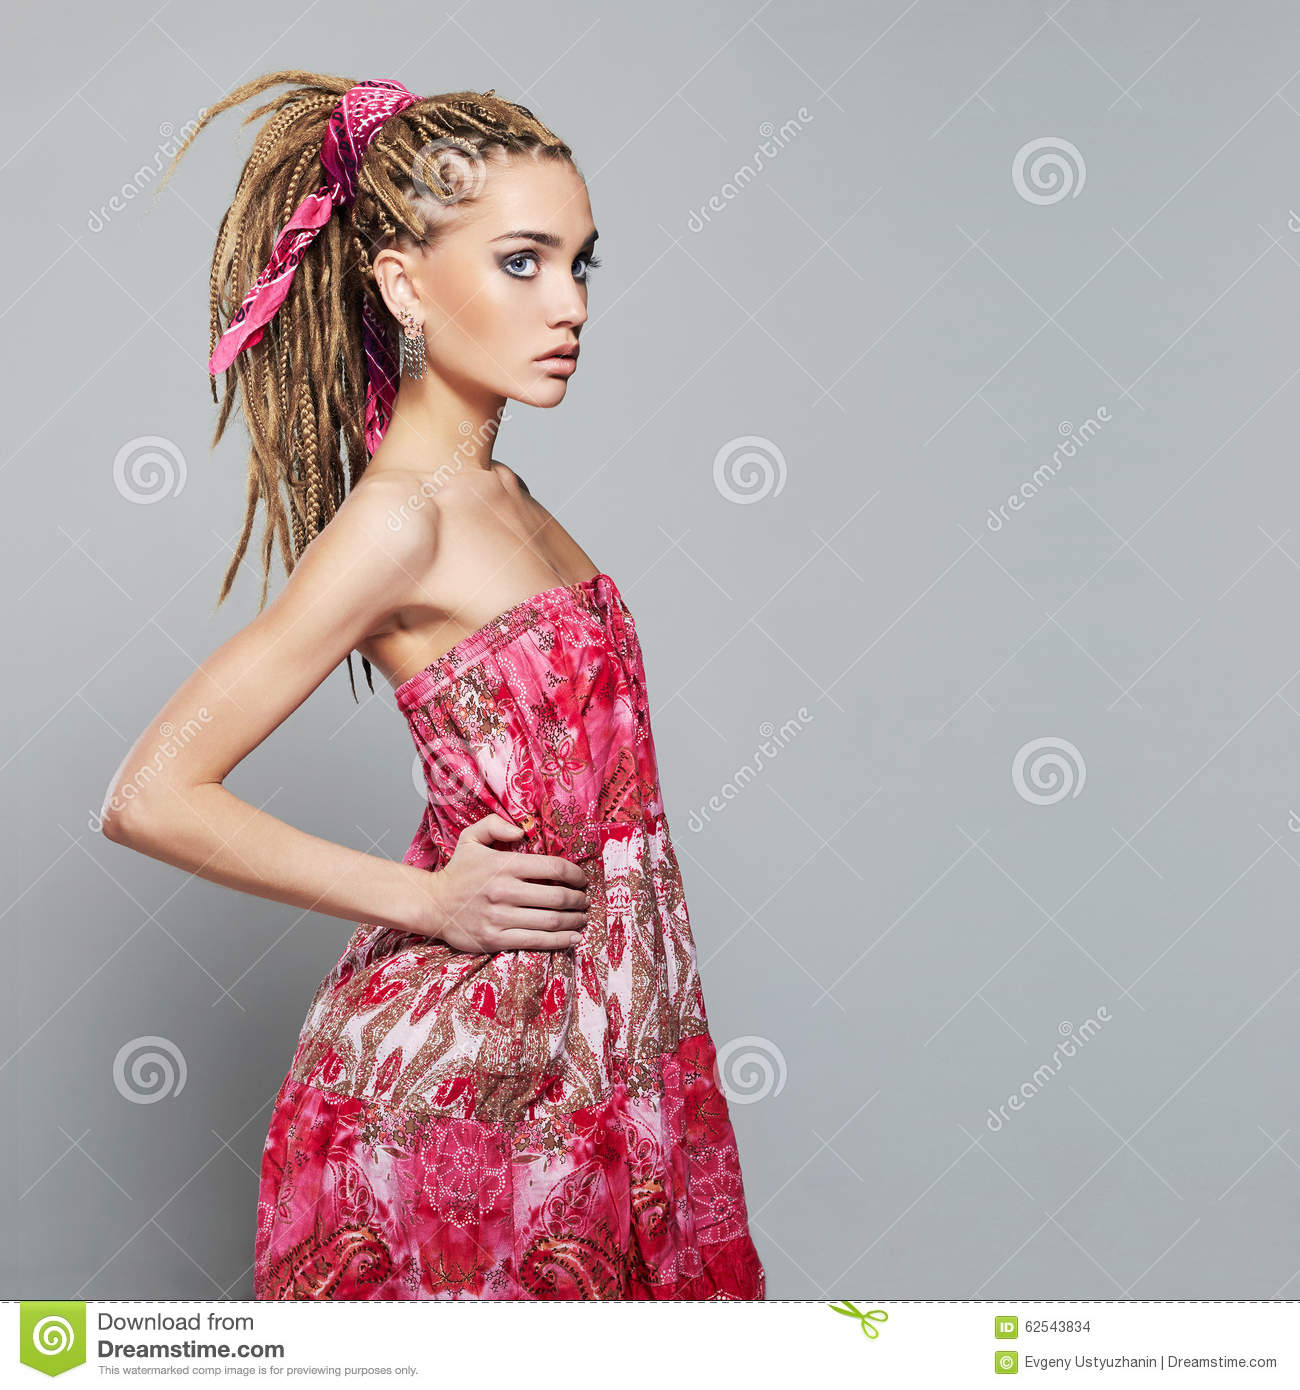 Dreadlocks Hairstyle Stock Photos And Images 1815 ...